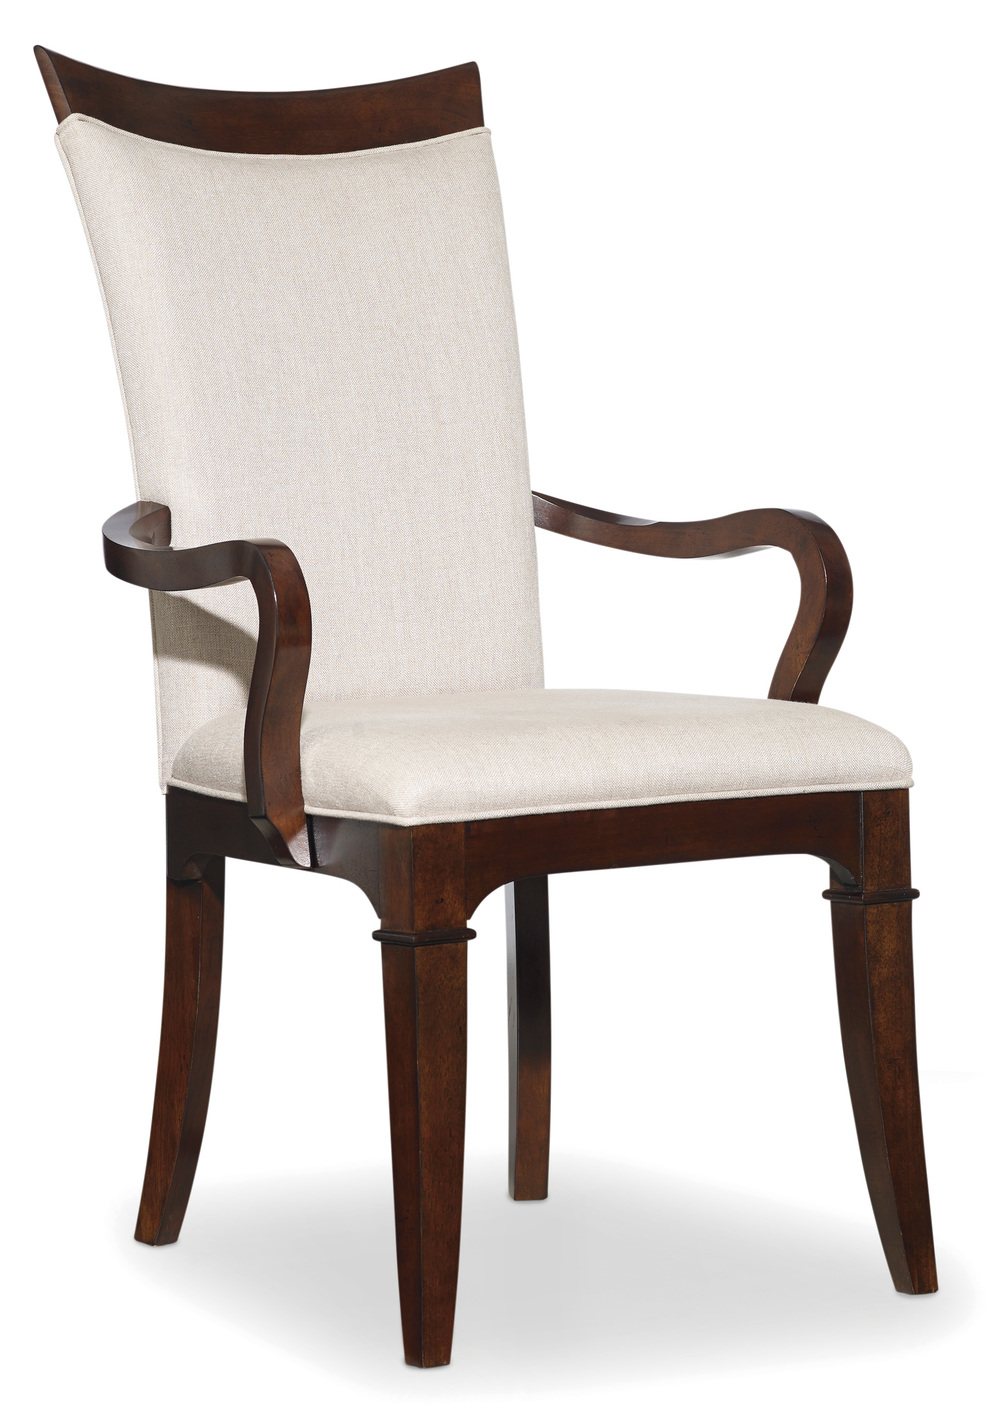 Hooker Furniture - Palisade Upholstered Arm Chair